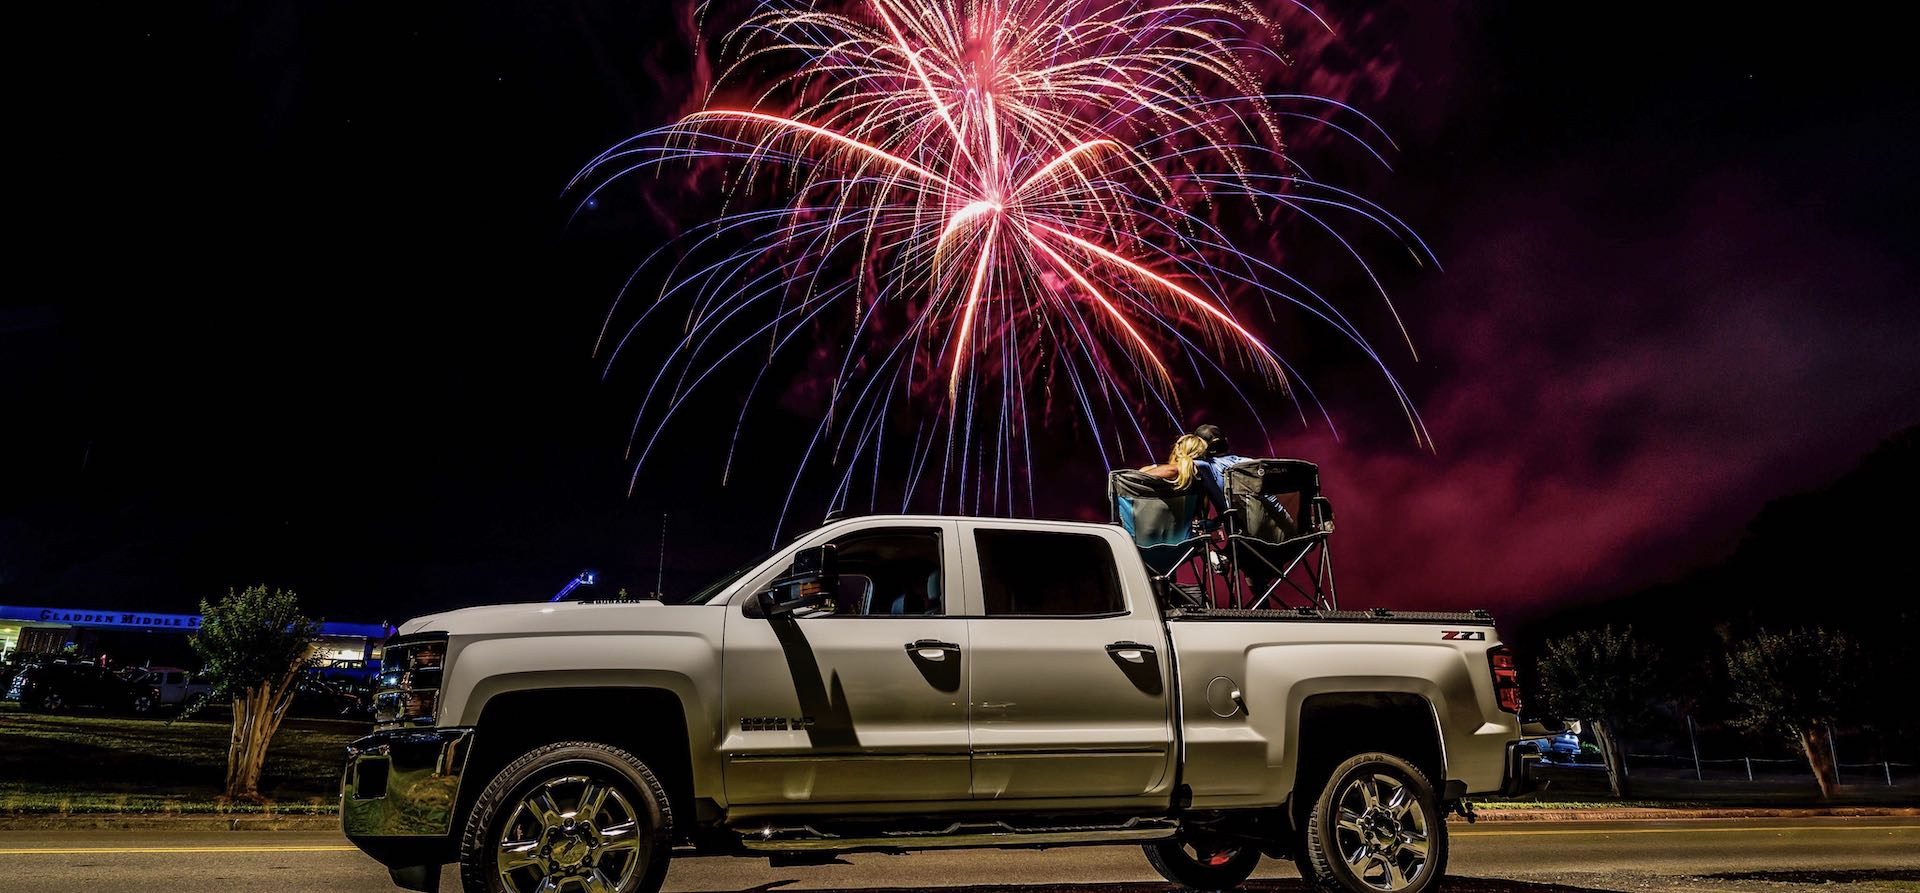 Fireworks above couple on top of a DiamondBack HD diamond plate bed cover on Chevy Silverado